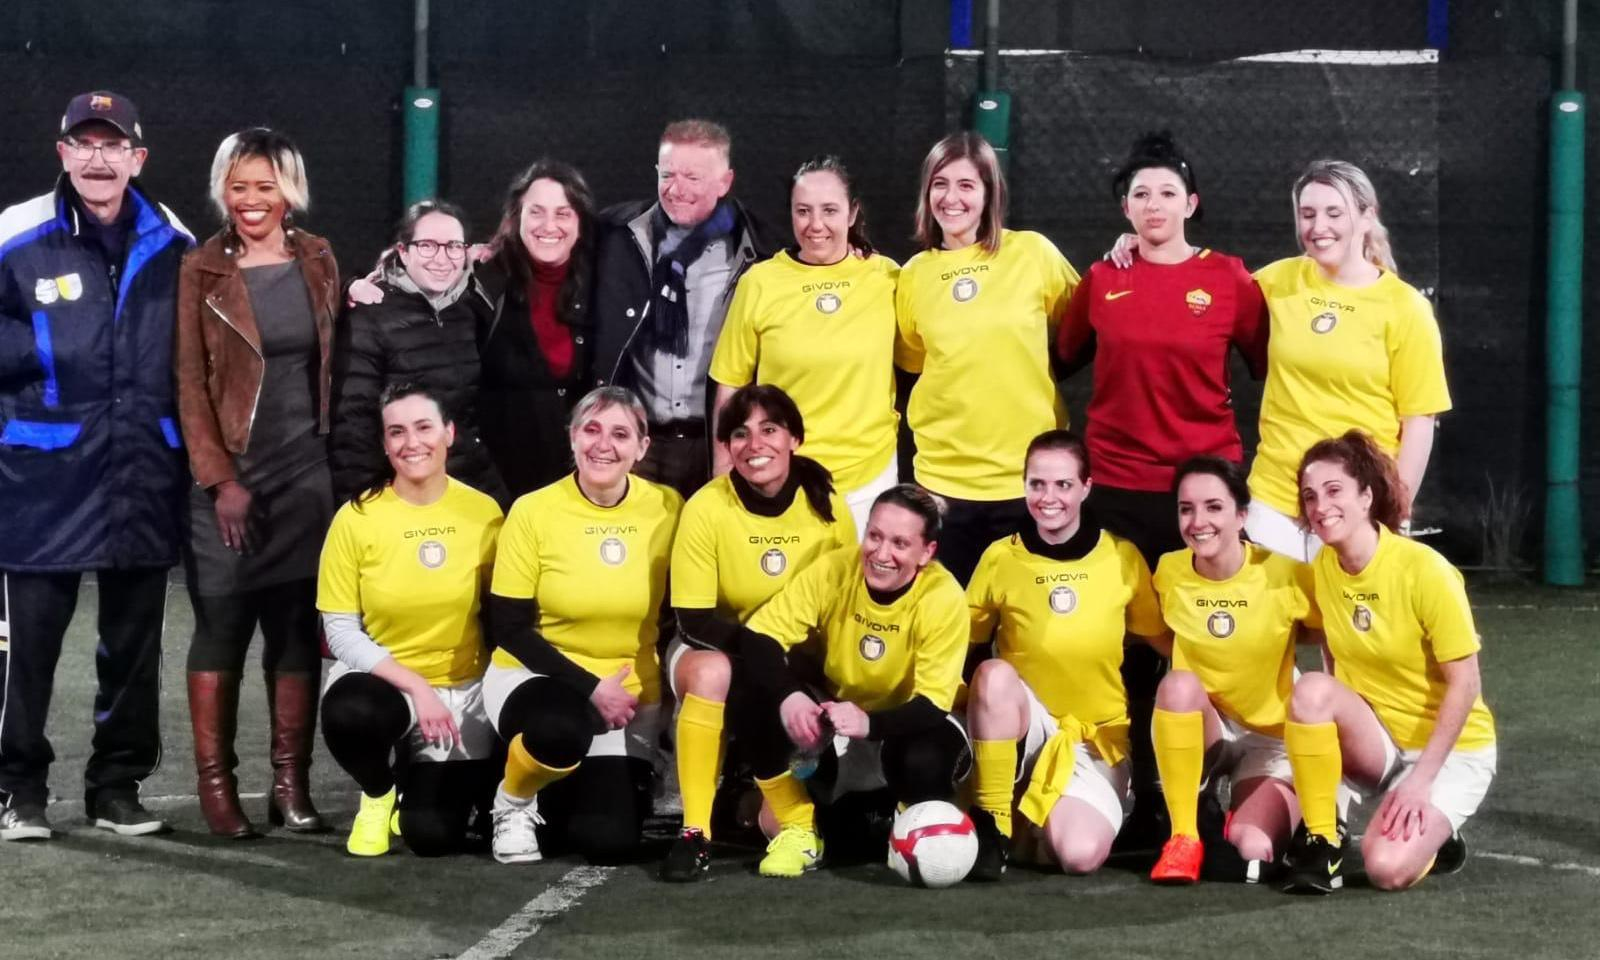 Vatican launches women's football team with pope's blessing